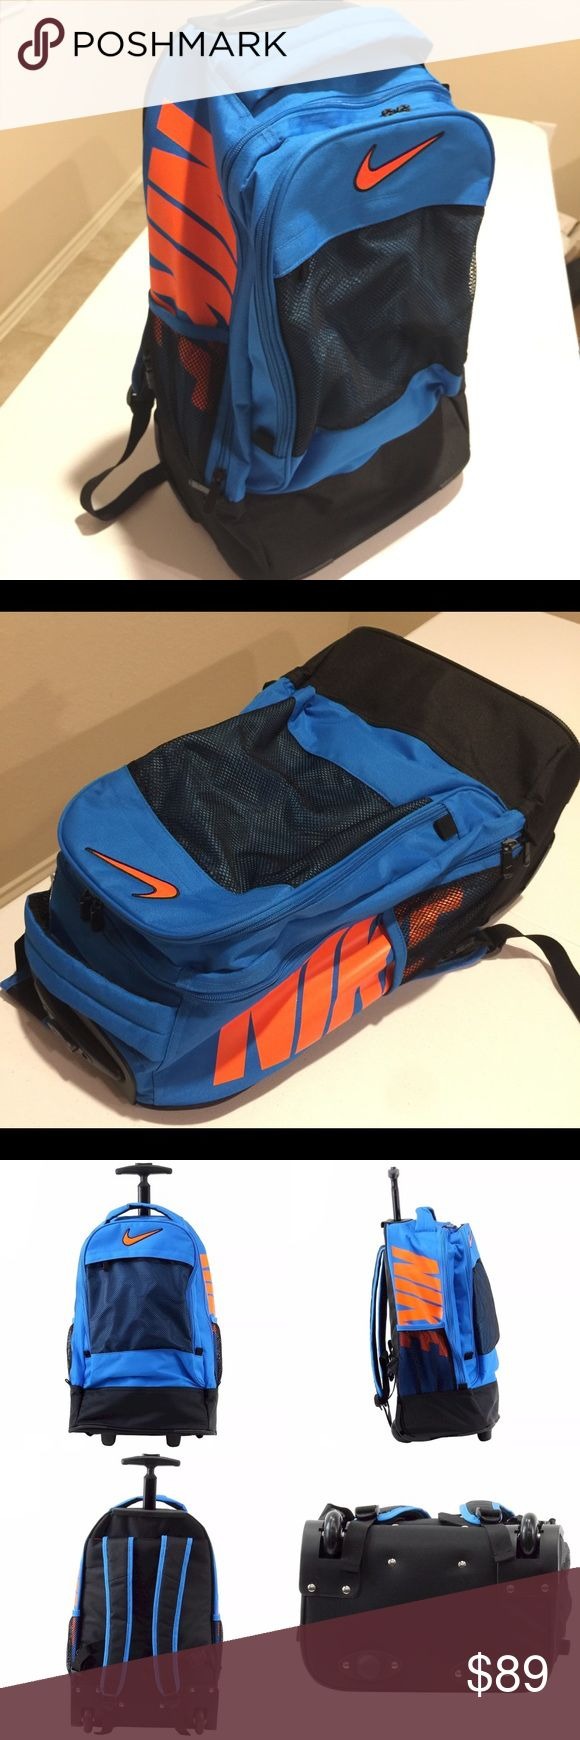 NEW! NIKE FULL SIZE ROLLER NEON ORANGE BLUE BAG Brand new with tag!  Nike neon orange and blue colored backpack, bag, suitcase, etc.  Handle extends up for easy strolling with this awesome bag on wheels!  Bold colors and huge, bold NIKE prints on both sides of the bag and embroidered NIKE emblem in bright orange at the front of the bag!  PERFECT FOR TRAVELING AND BACK TO SCHOOL!!!  Full size ADULT BAG! Nike Bags Backpacks